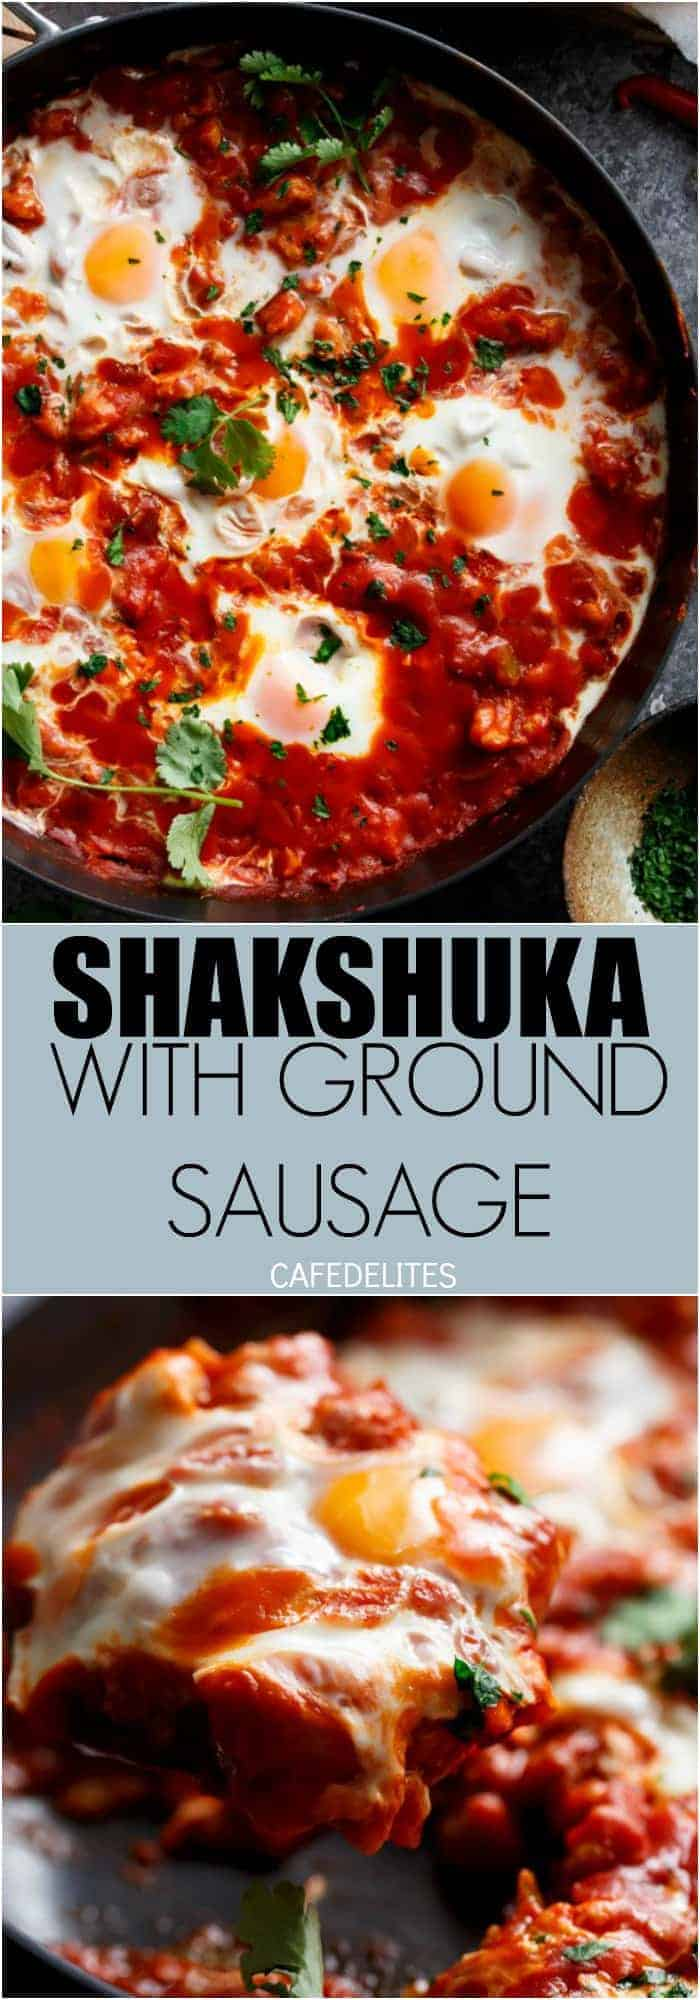 Eggs In Tomato Sauce (Shakshuka): thick, runny yolk meets rich tomato sauce. This is some good, fiery comfort food | https://cafedelites.com